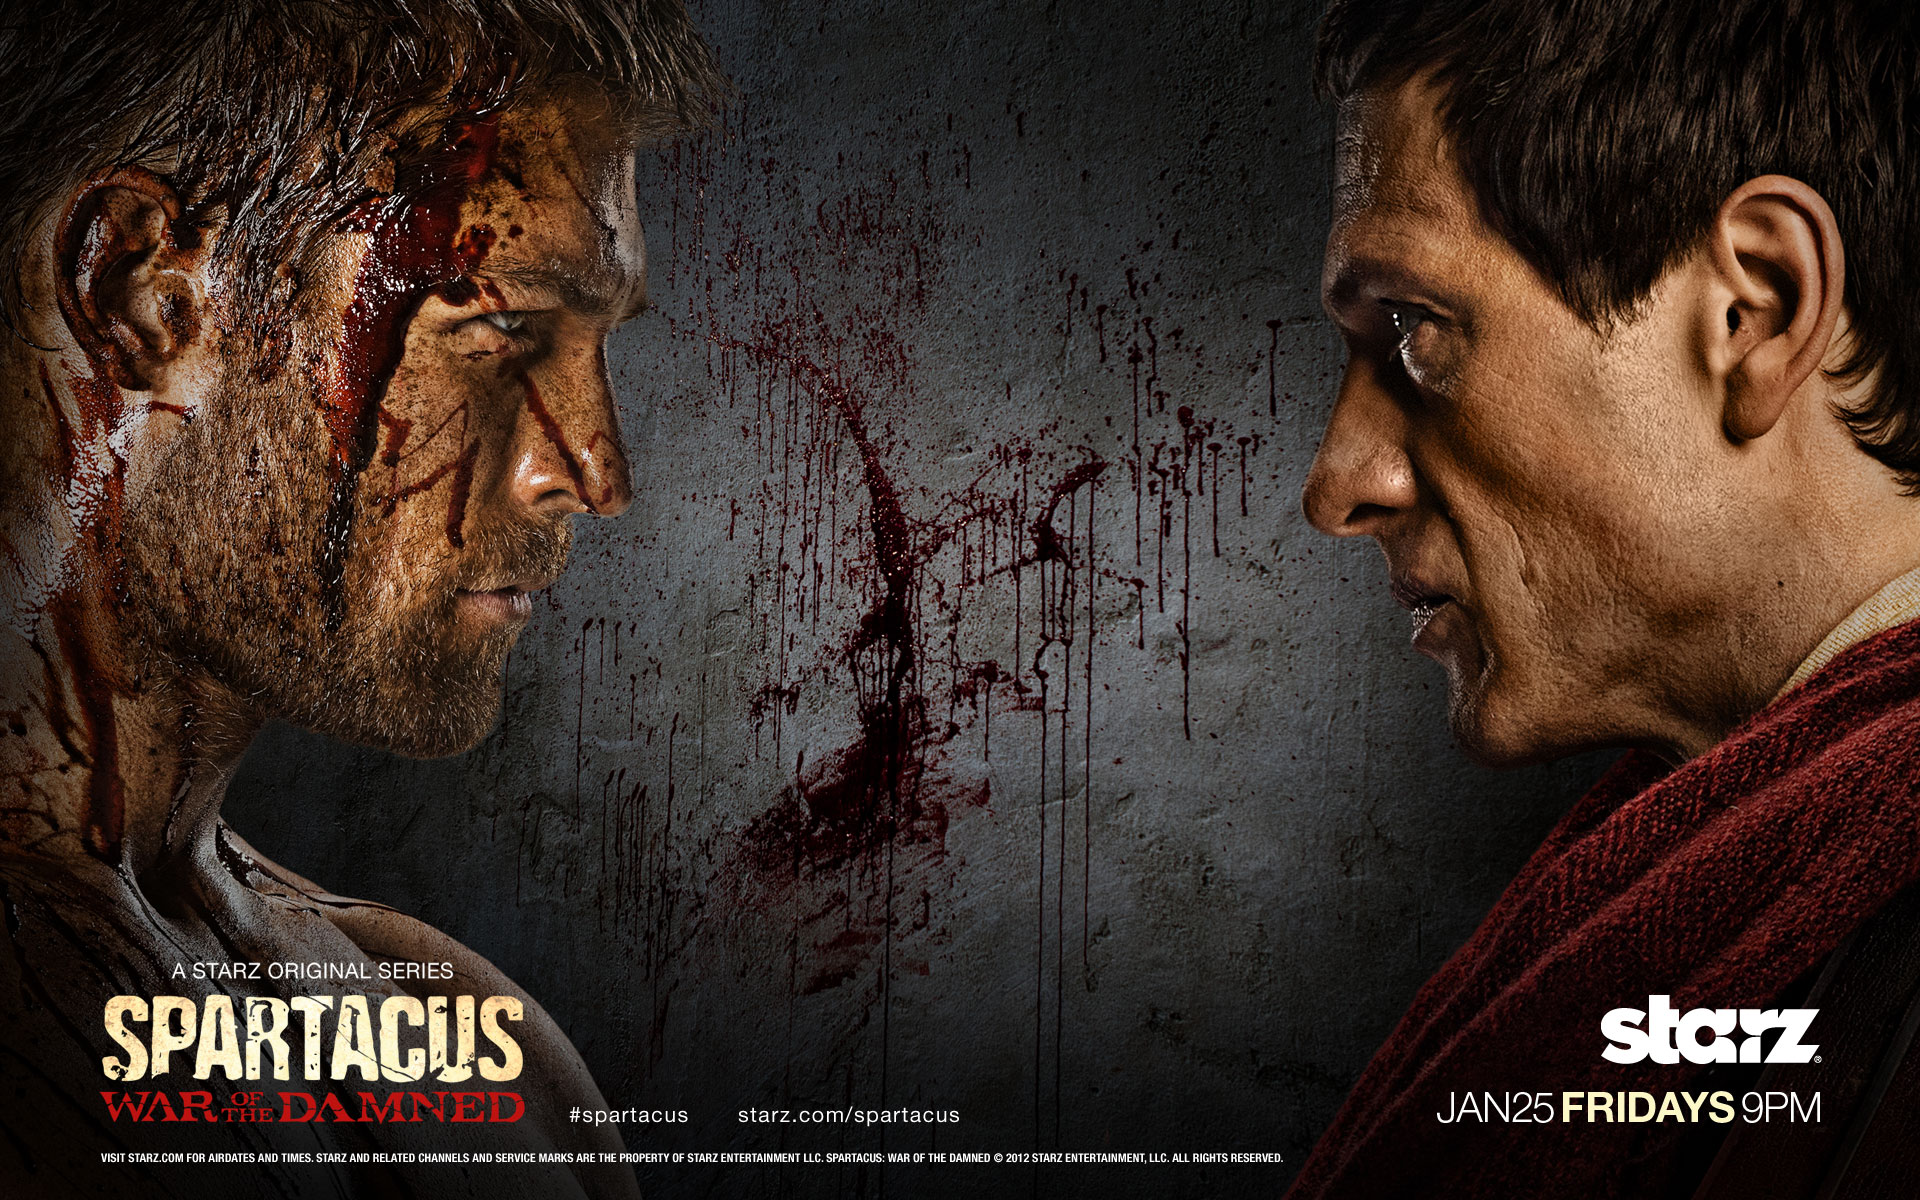 Spartacus: War of the Damned (�LTIMO EPISODIO DE LA SERIE- 12 de abril)